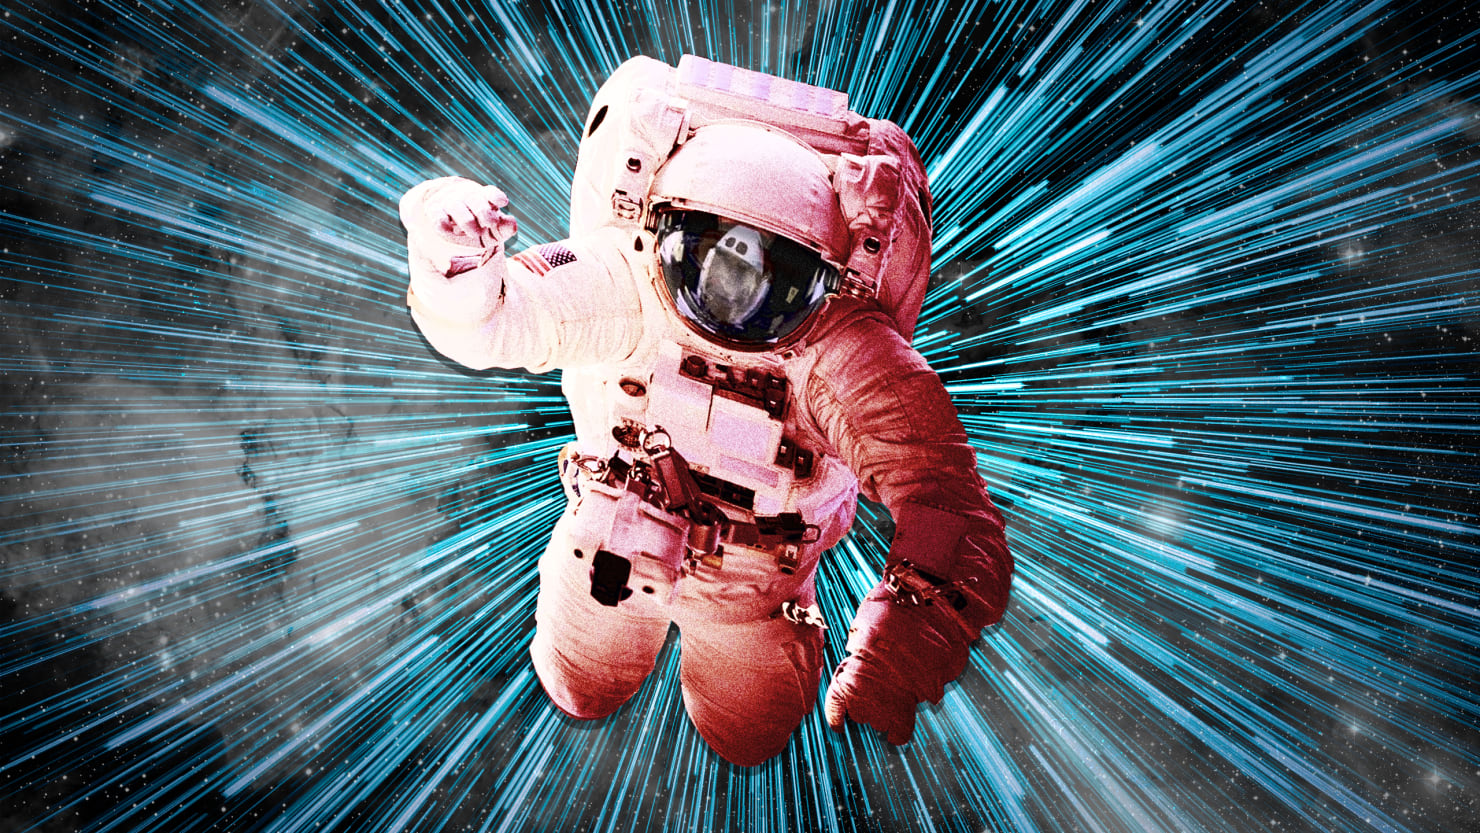 astronaut in deep space - photo #24